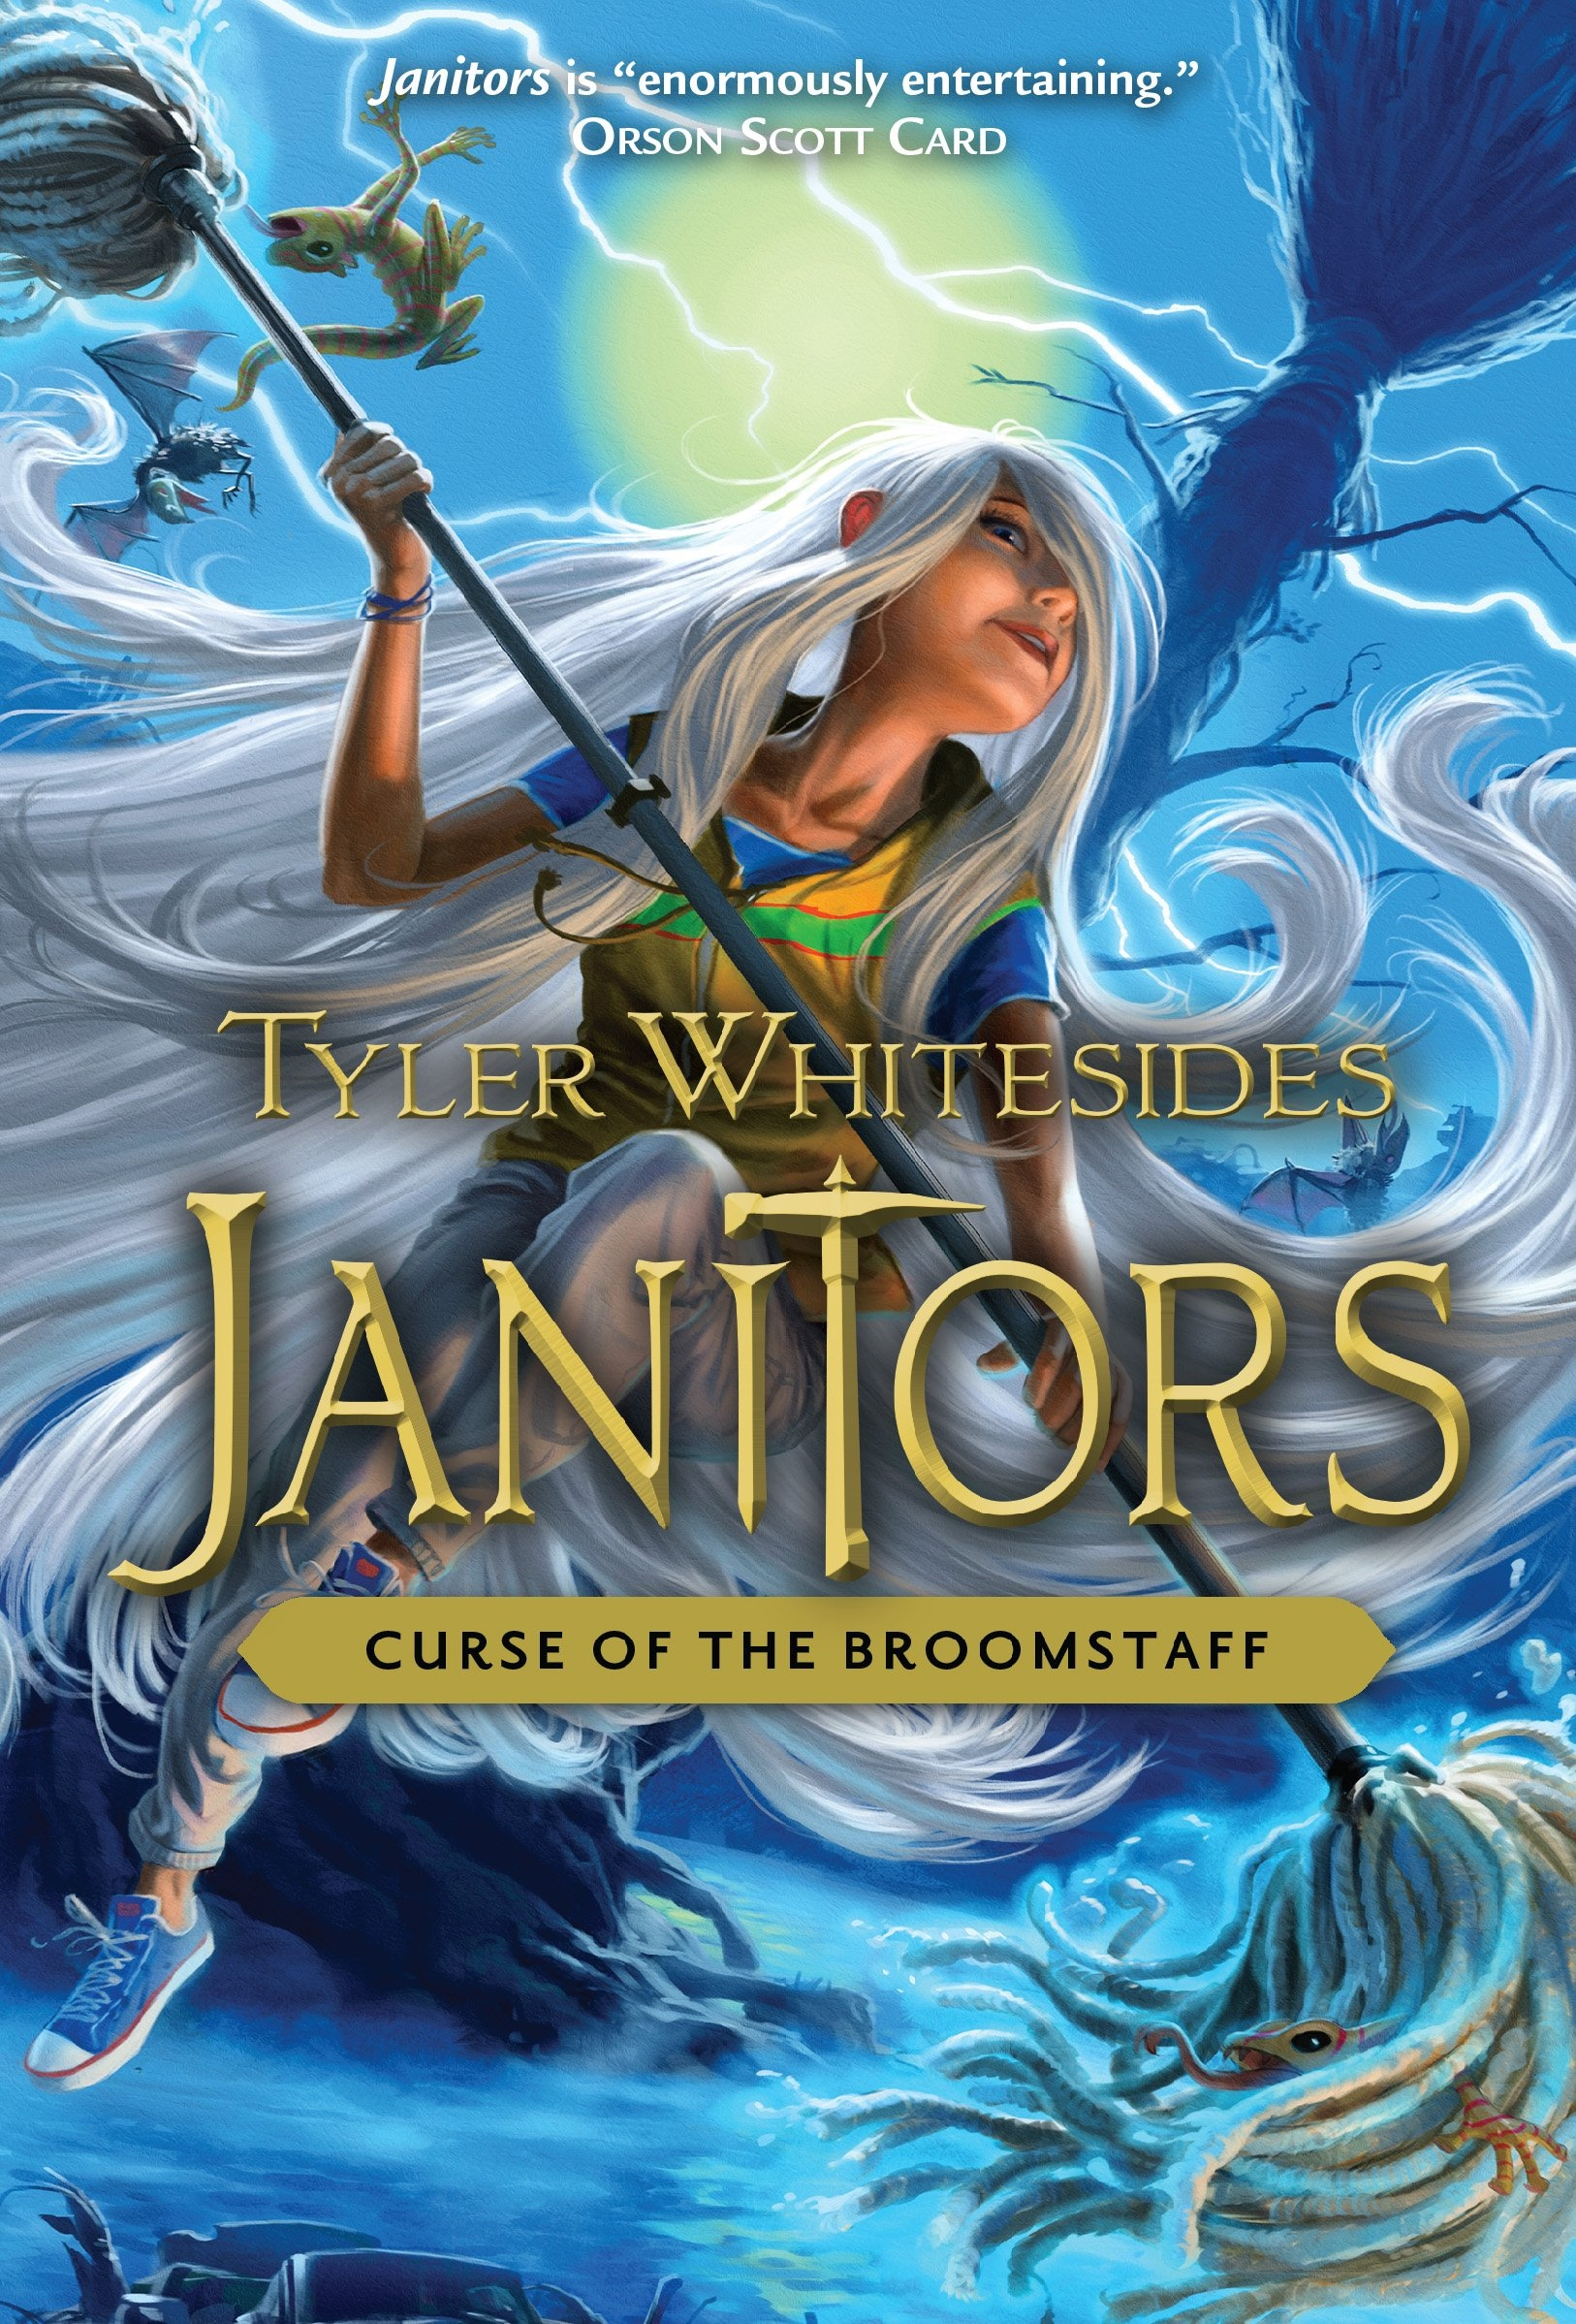 Image for Janitors, Book 3  Curse of the Broomstaff